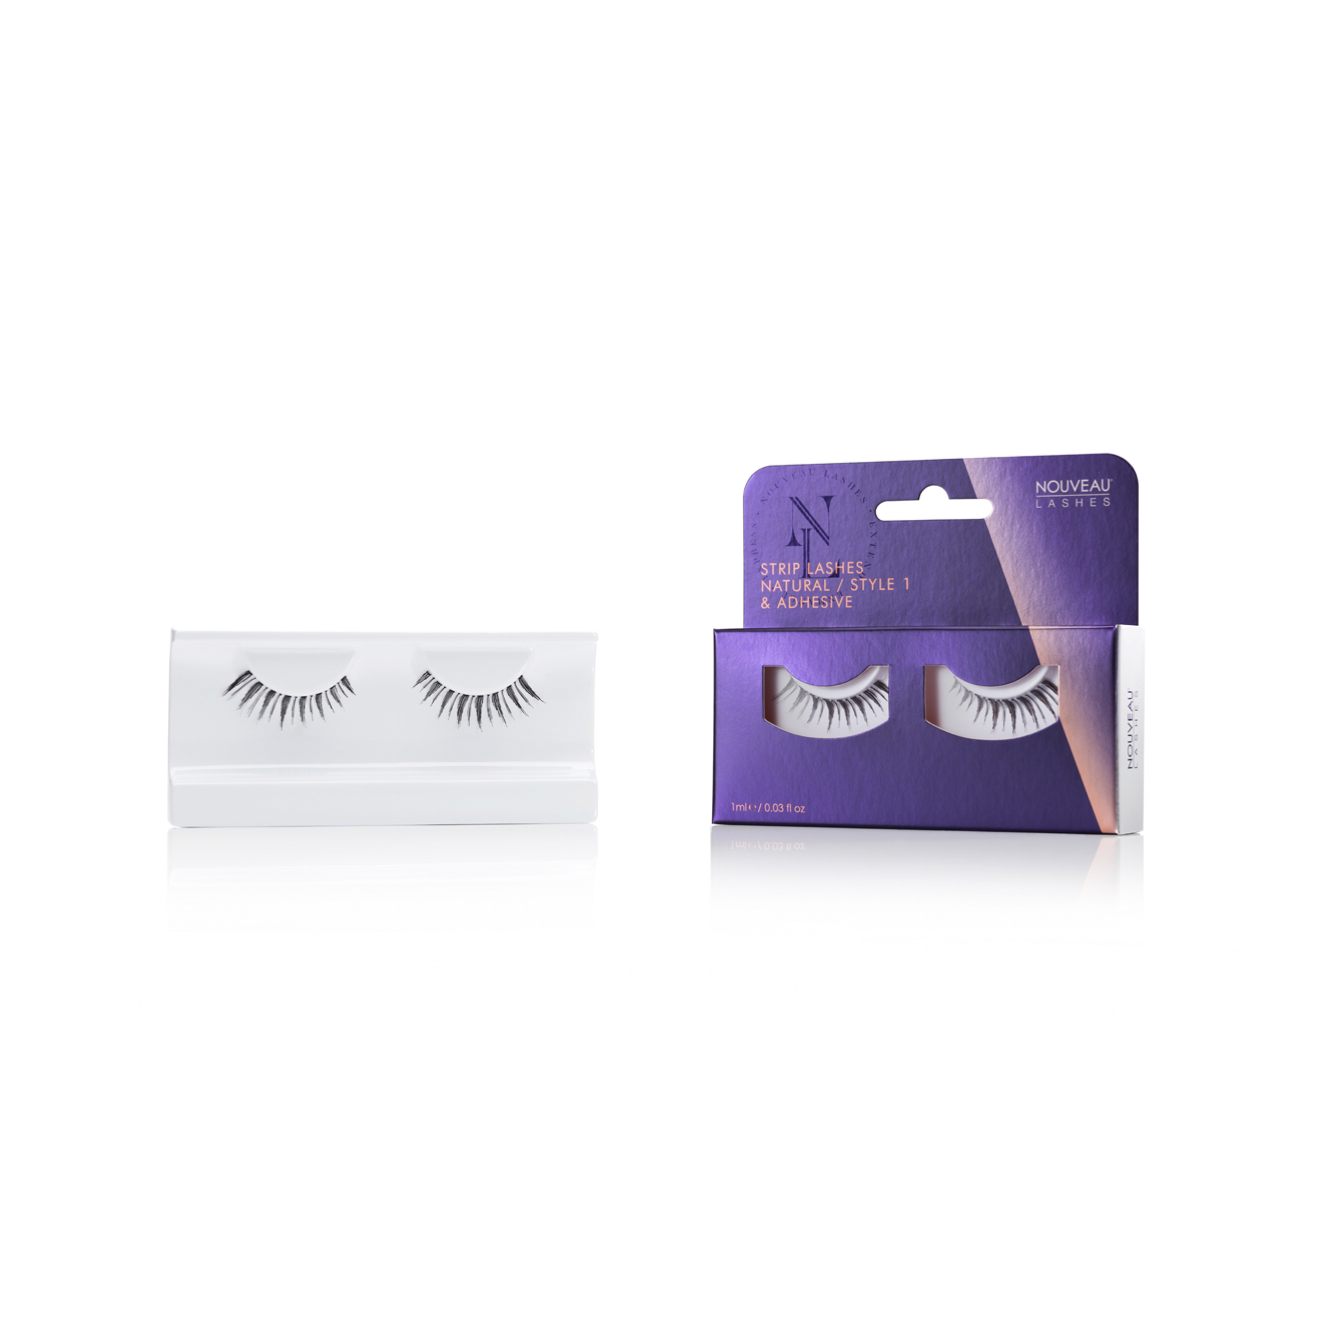 Nouveau Strip Lashes Natural Style 1